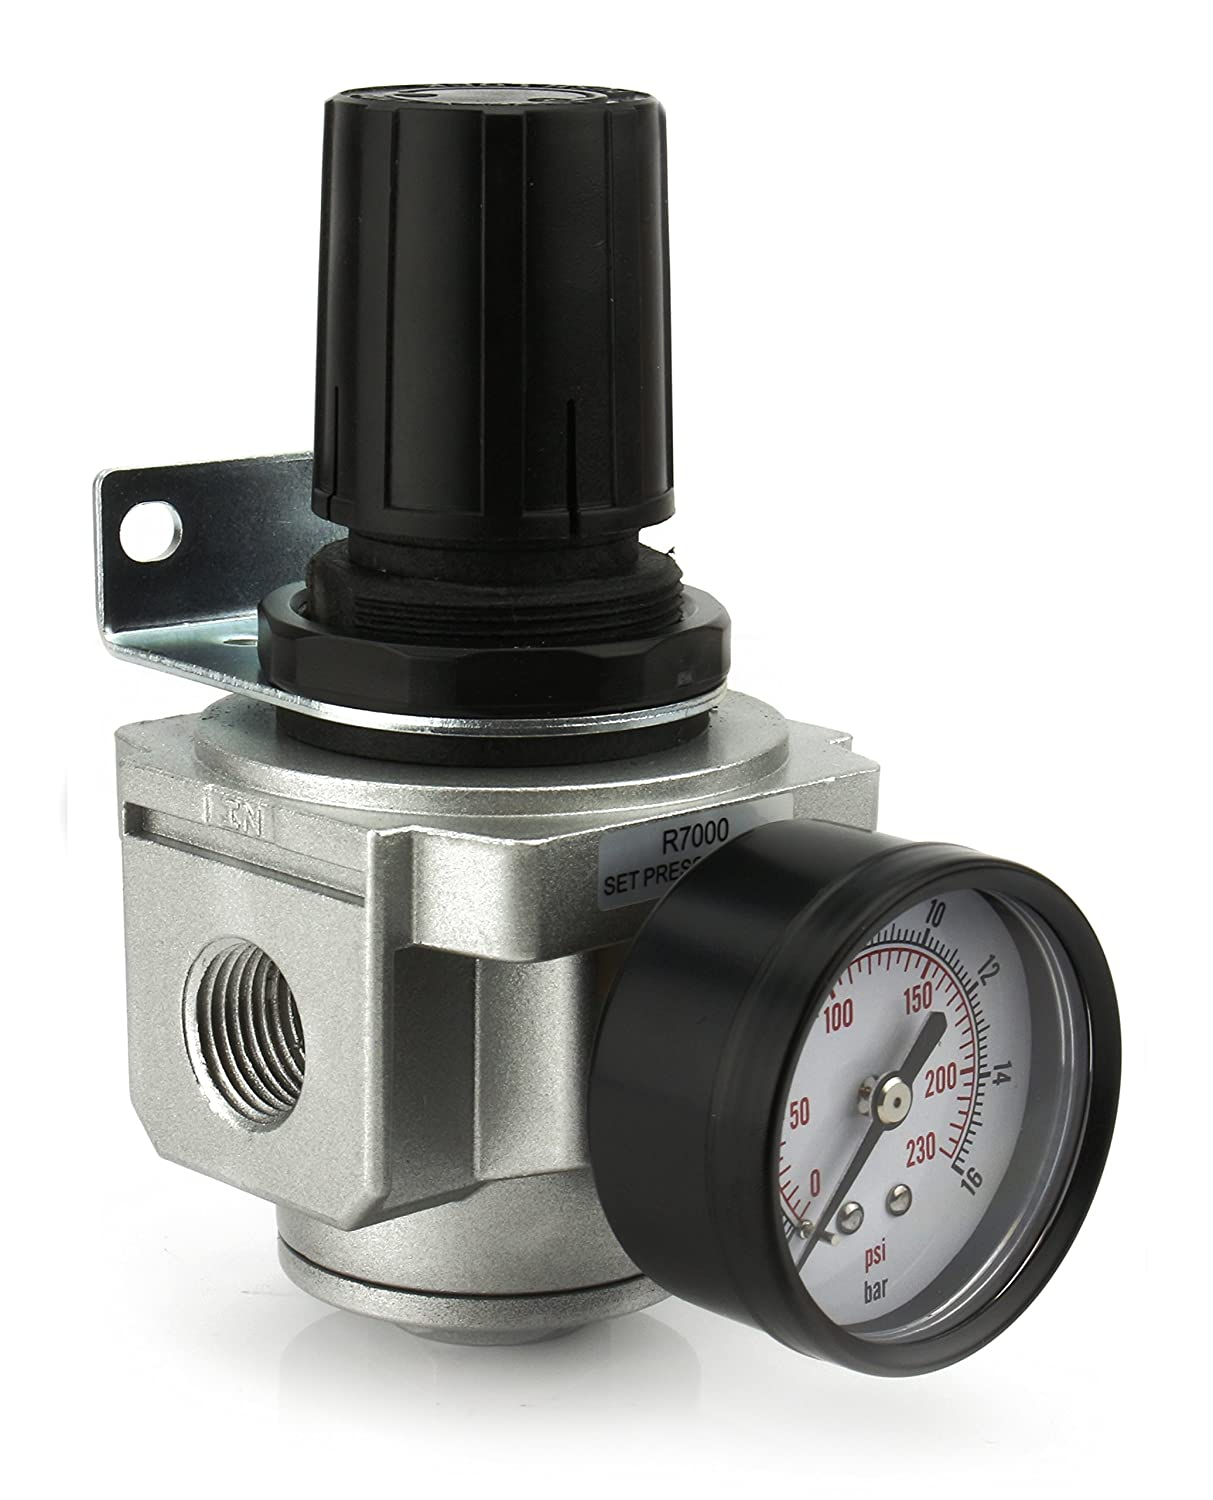 "Air Pressure Regulator for compressor compressed air 1/2"" FREE GAUGE"